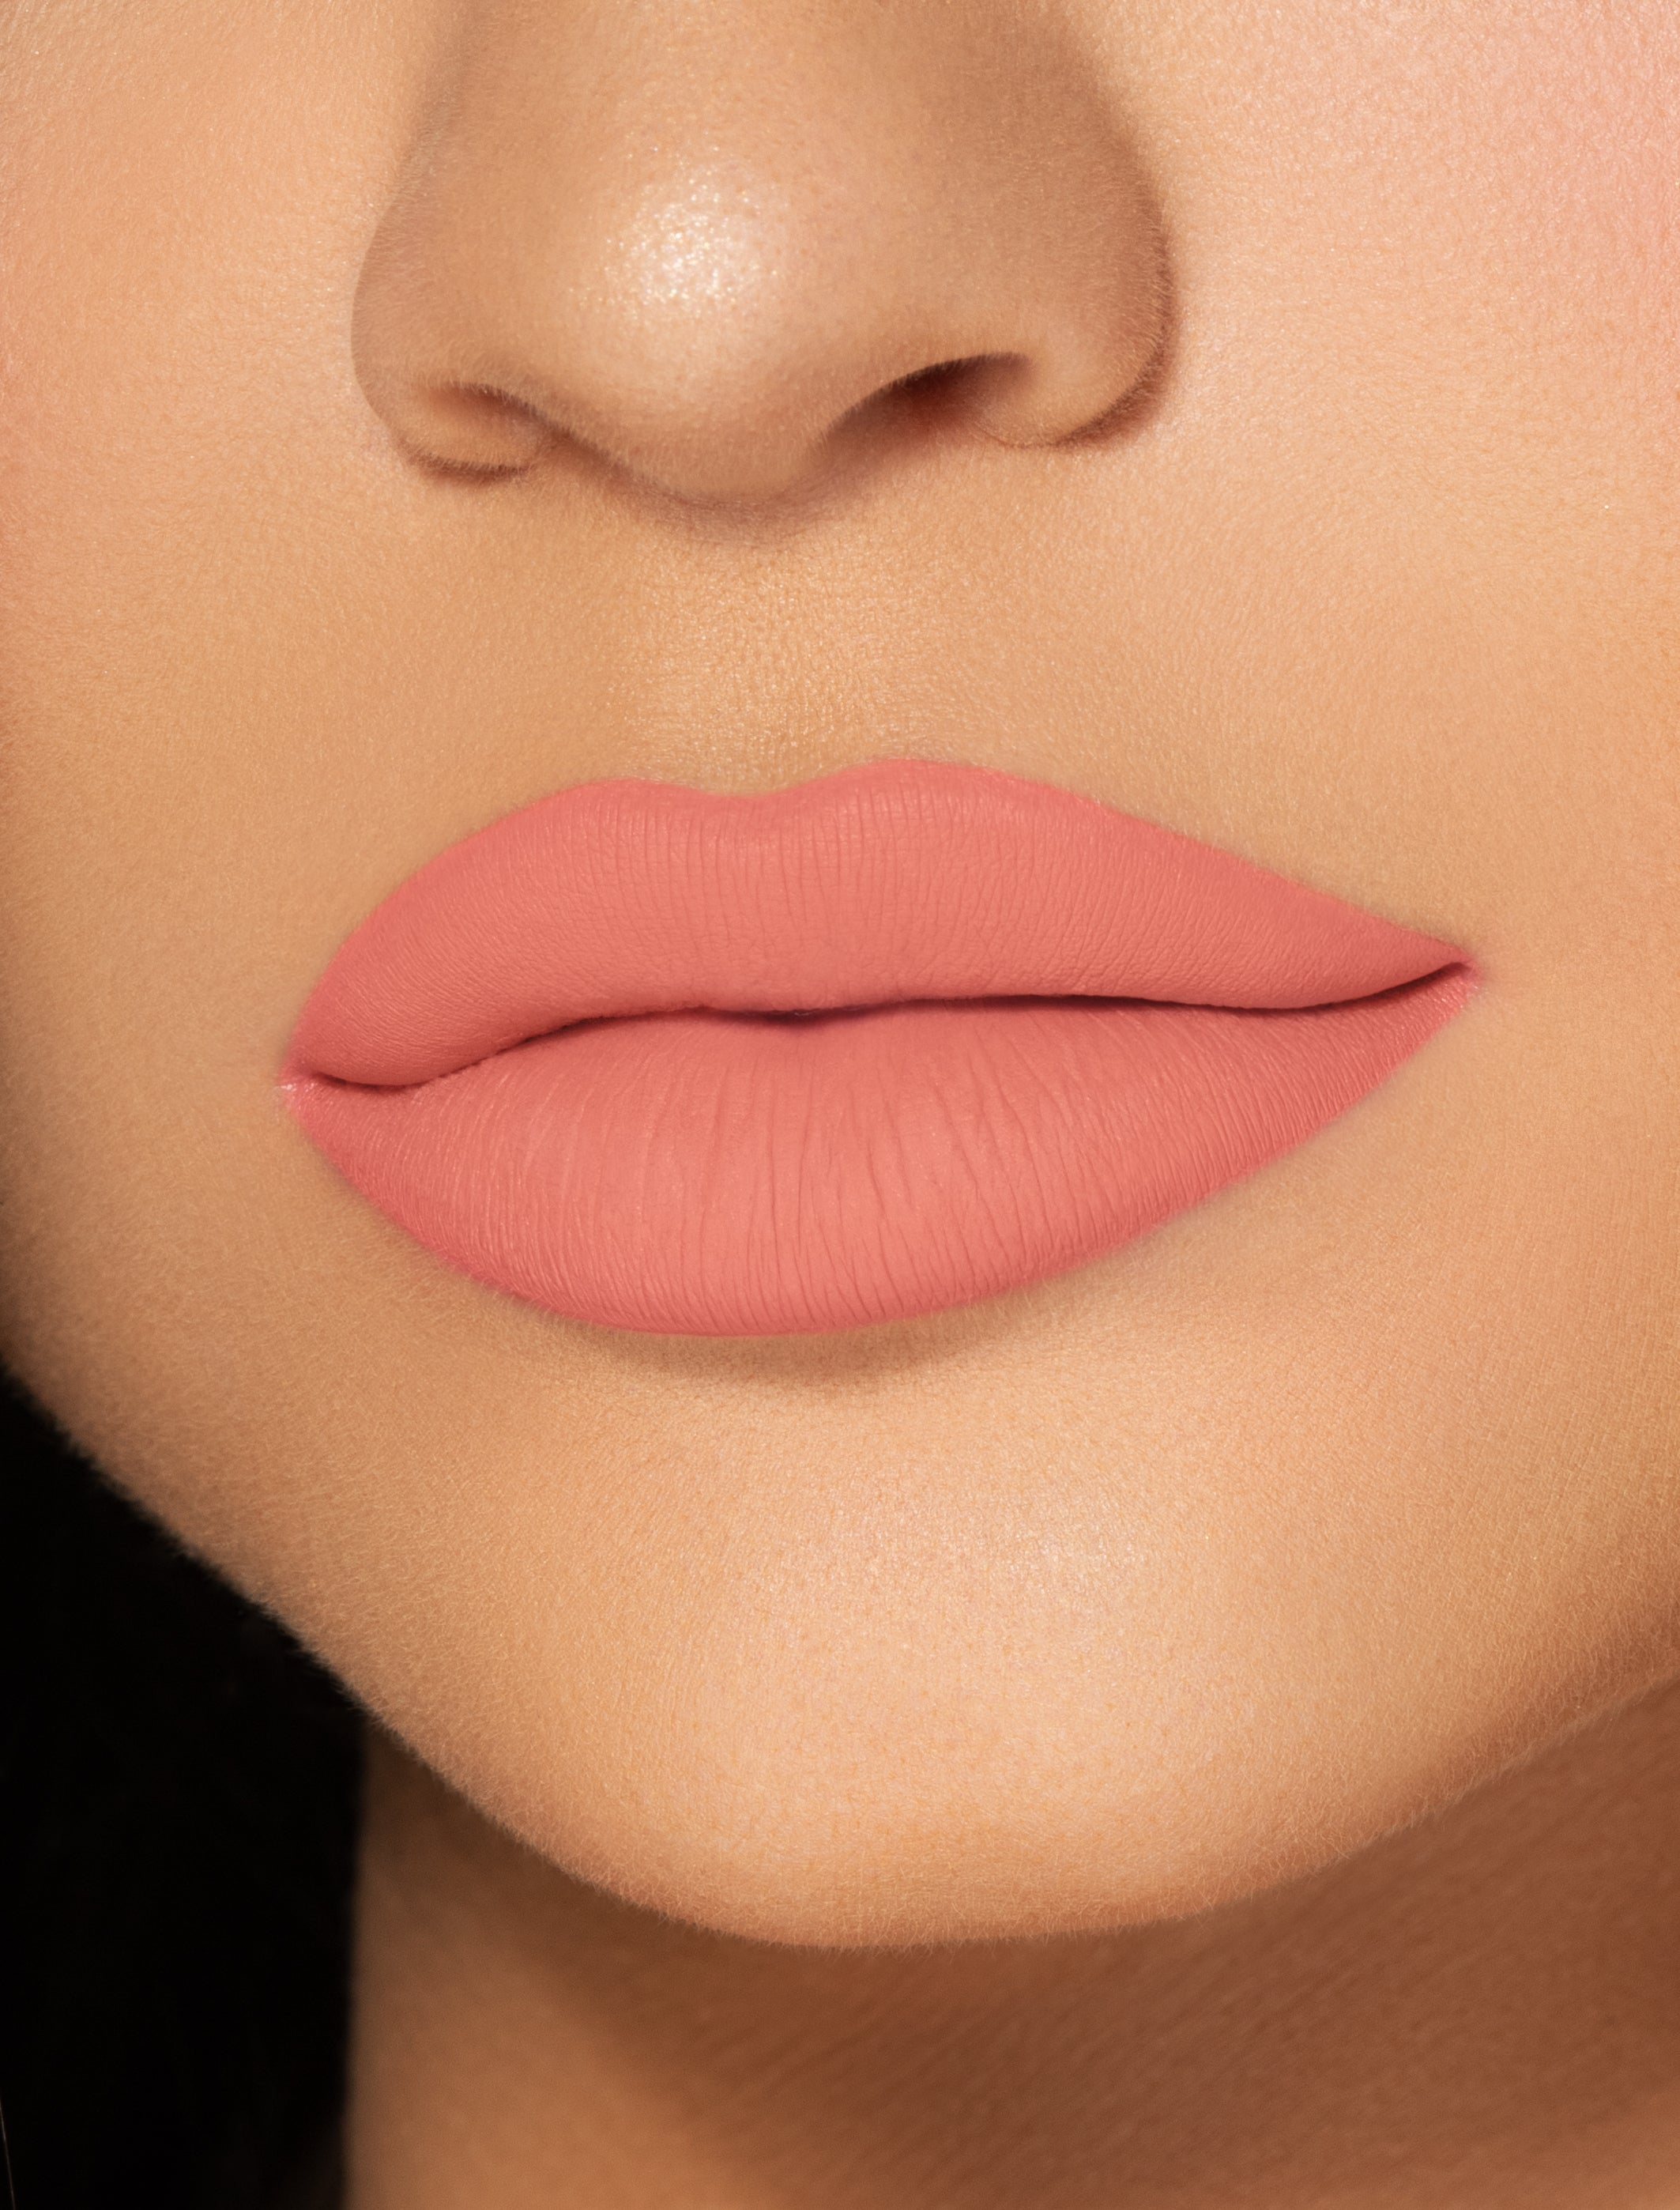 Dirty Peach | Matte Liquid Lipstick - Kylie Cosmetics by Kylie Jenner